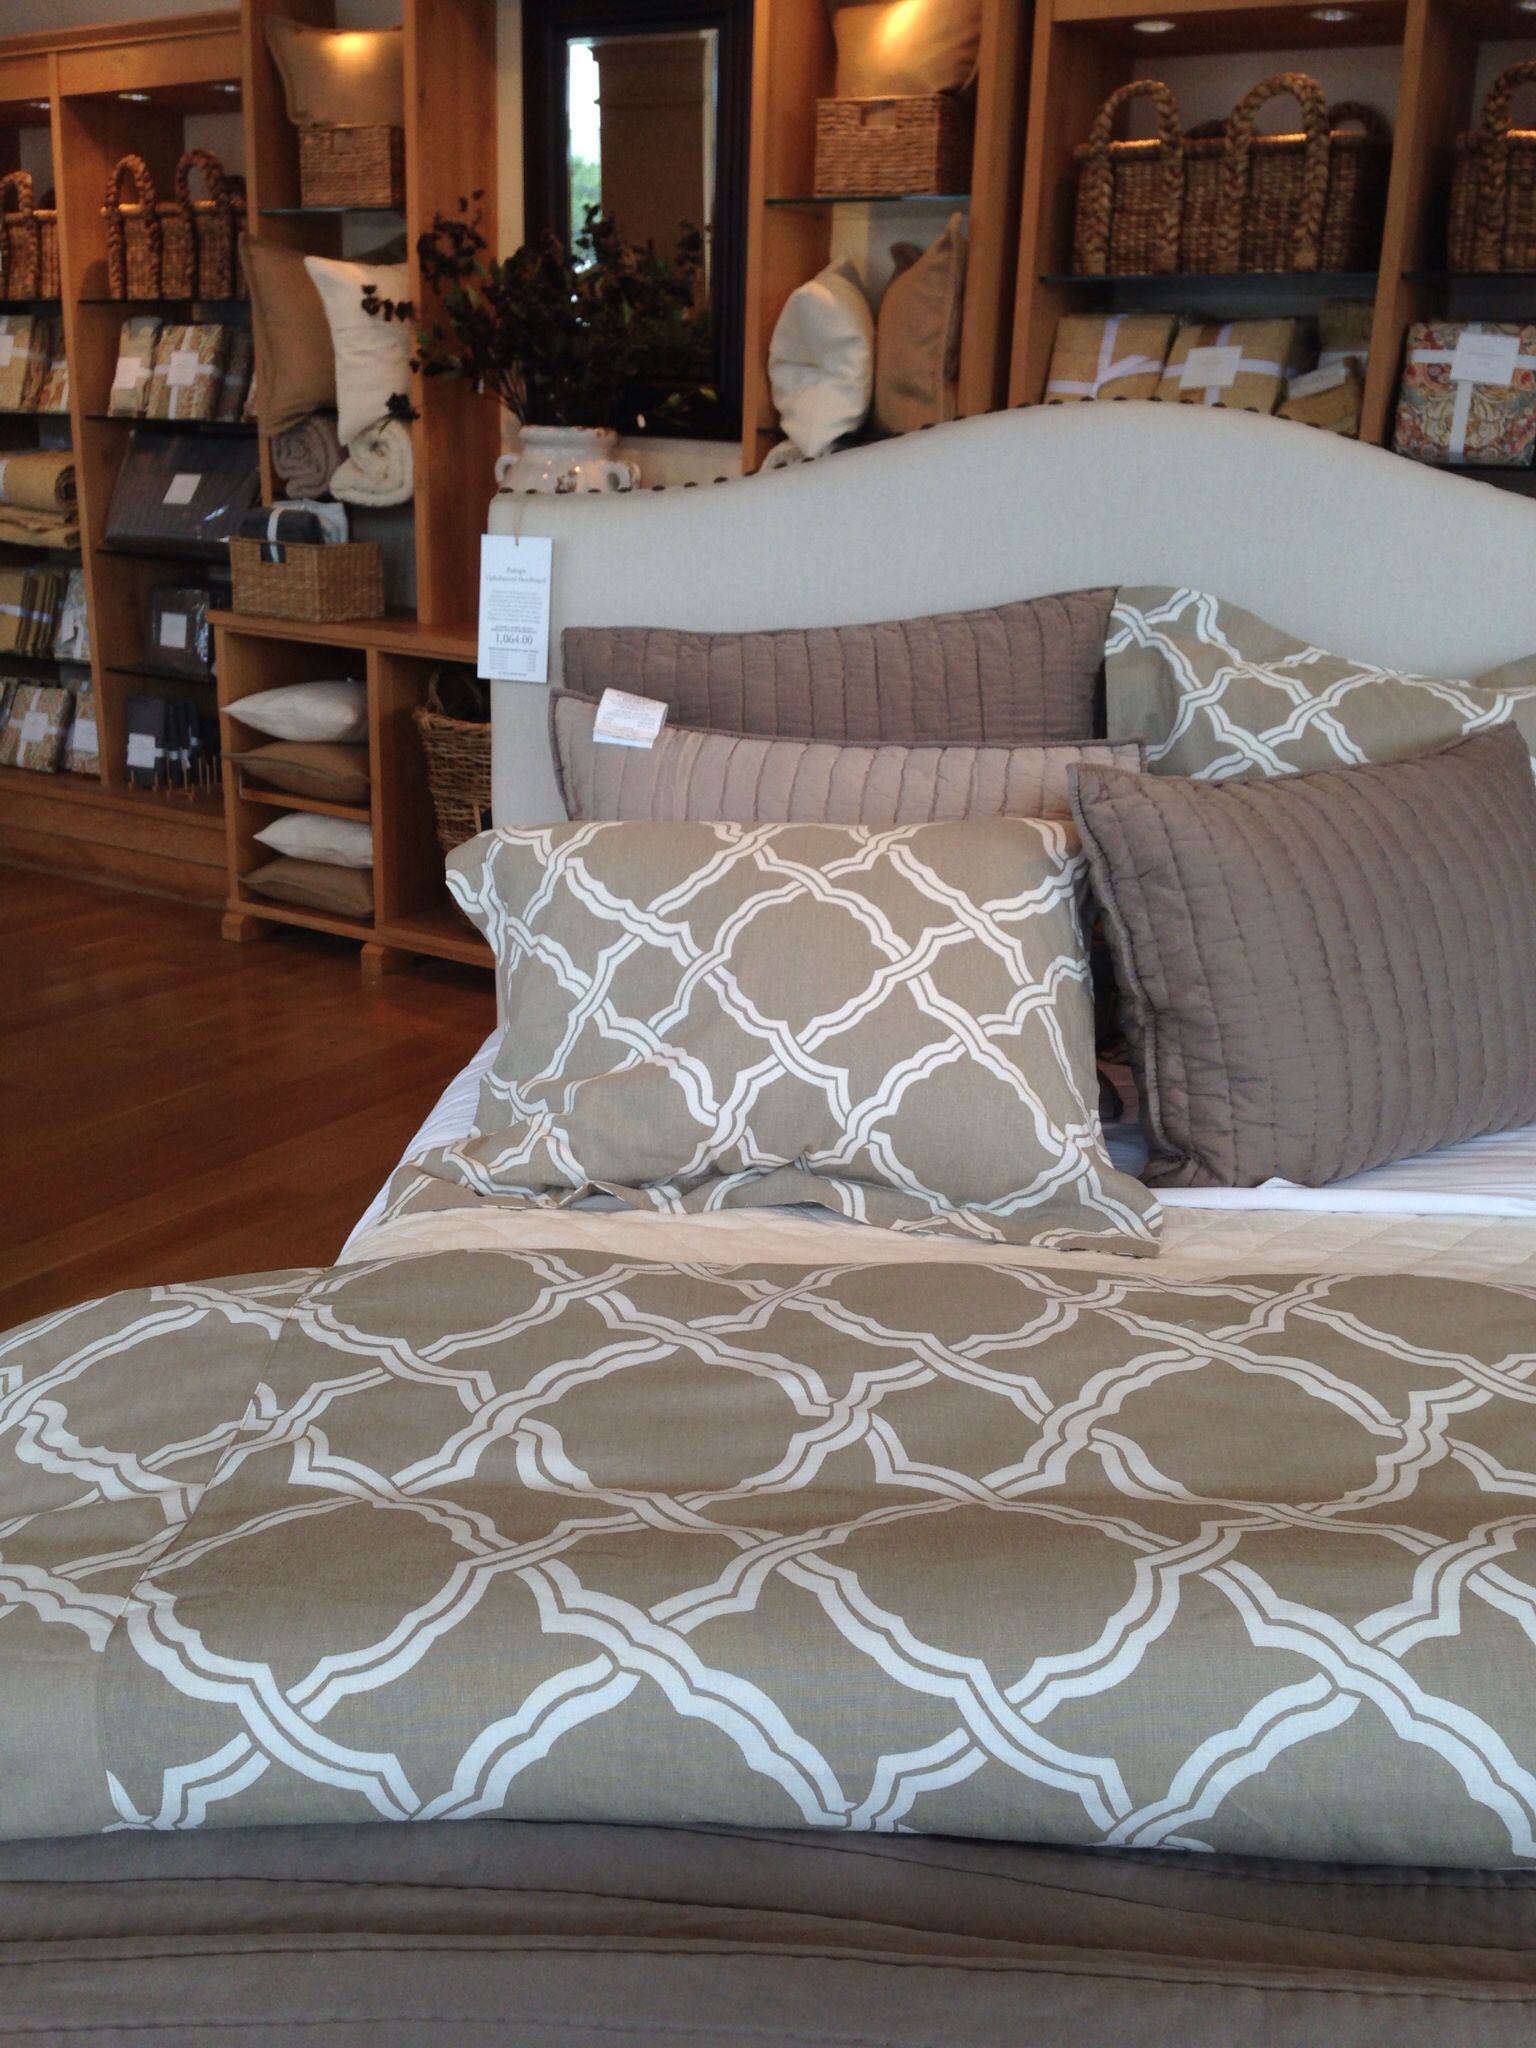 The best images about for the home on pinterest diy headboards